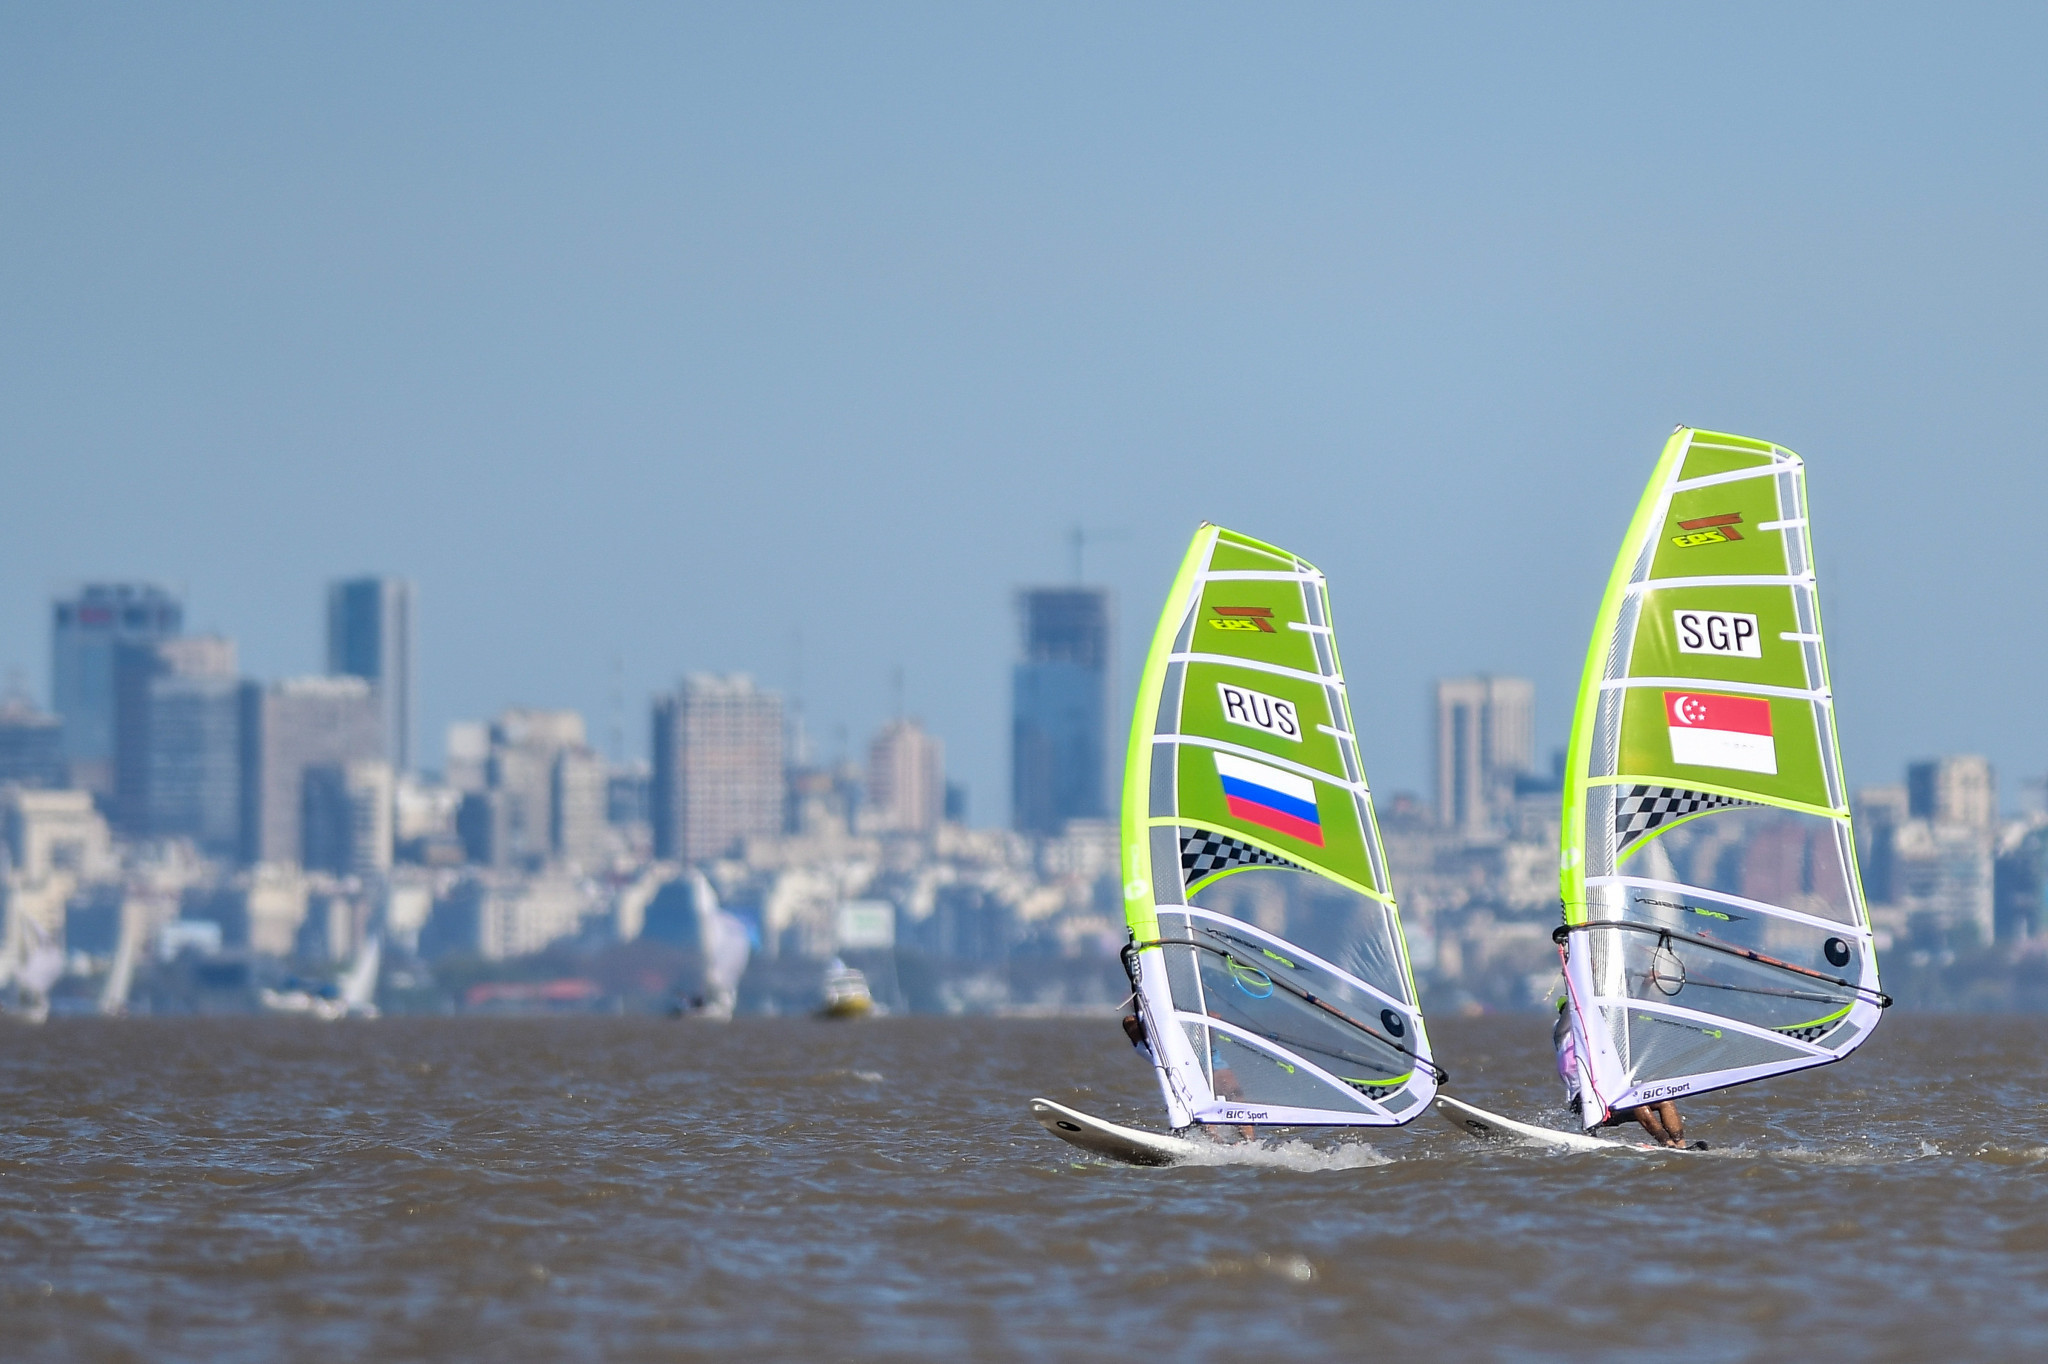 Youth Olympic Games bronze medallist Yana Reznikova leads Russian hopes for success at the RS:X Windsurfing Youth World Championships at the Yacht Club of Saint-Petersburg ©Getty Images